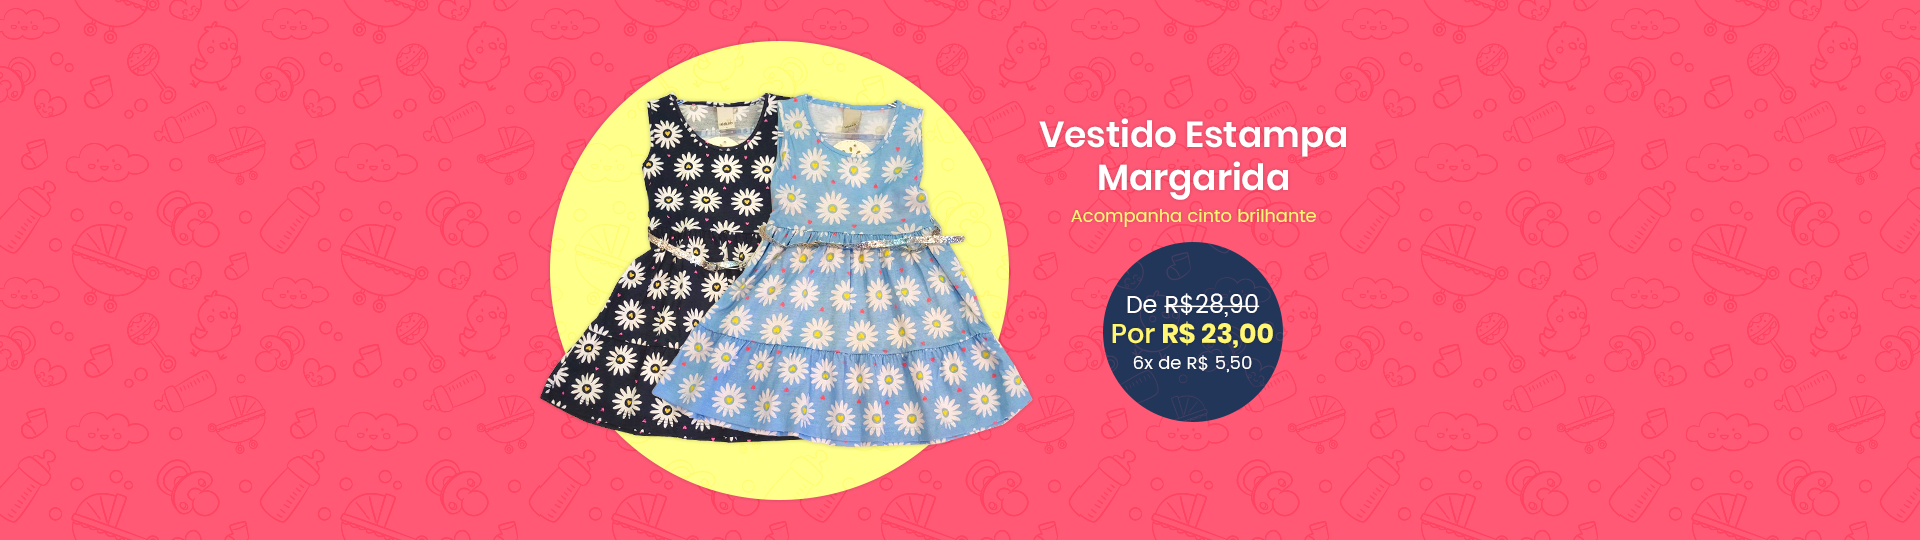 Vestido Estampa Margarida